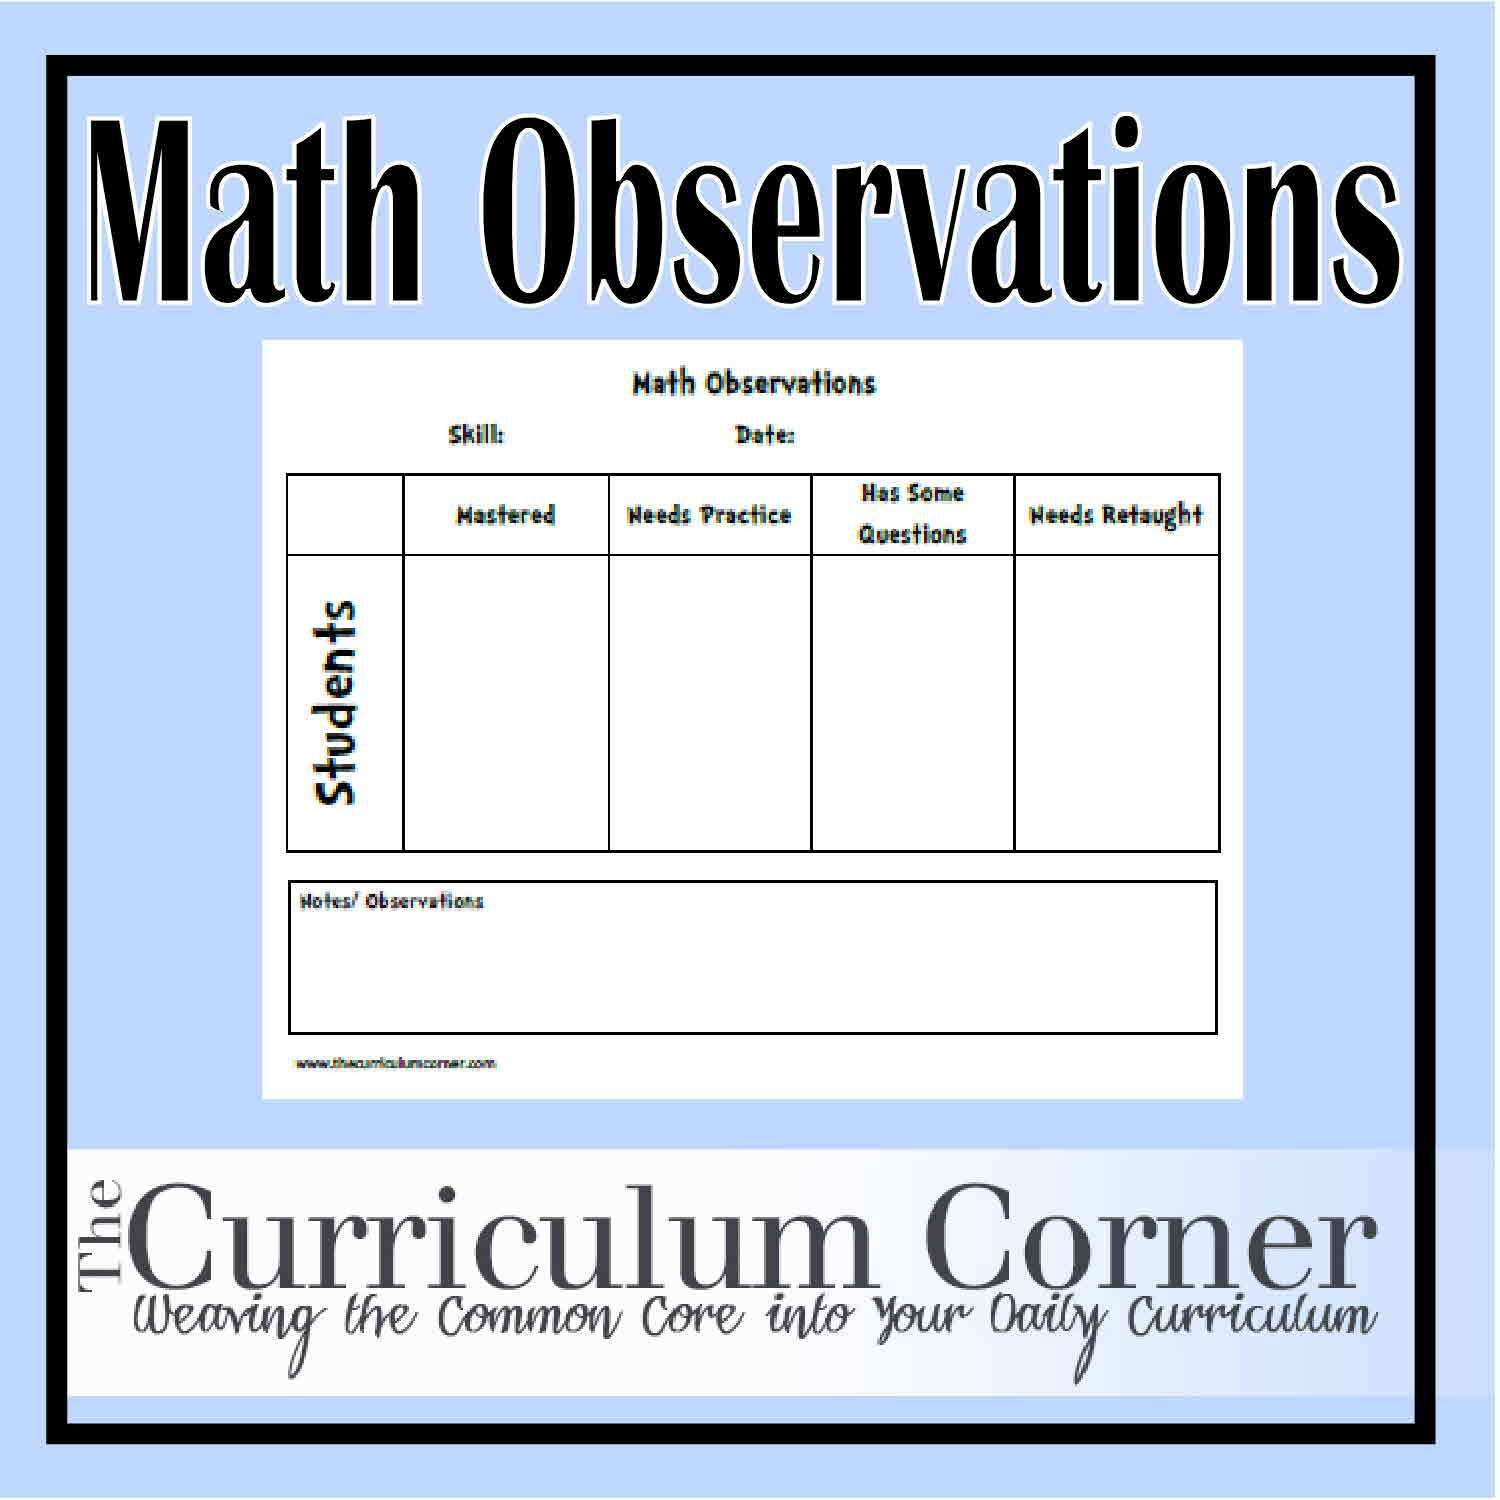 Math Observations Recording Sheet